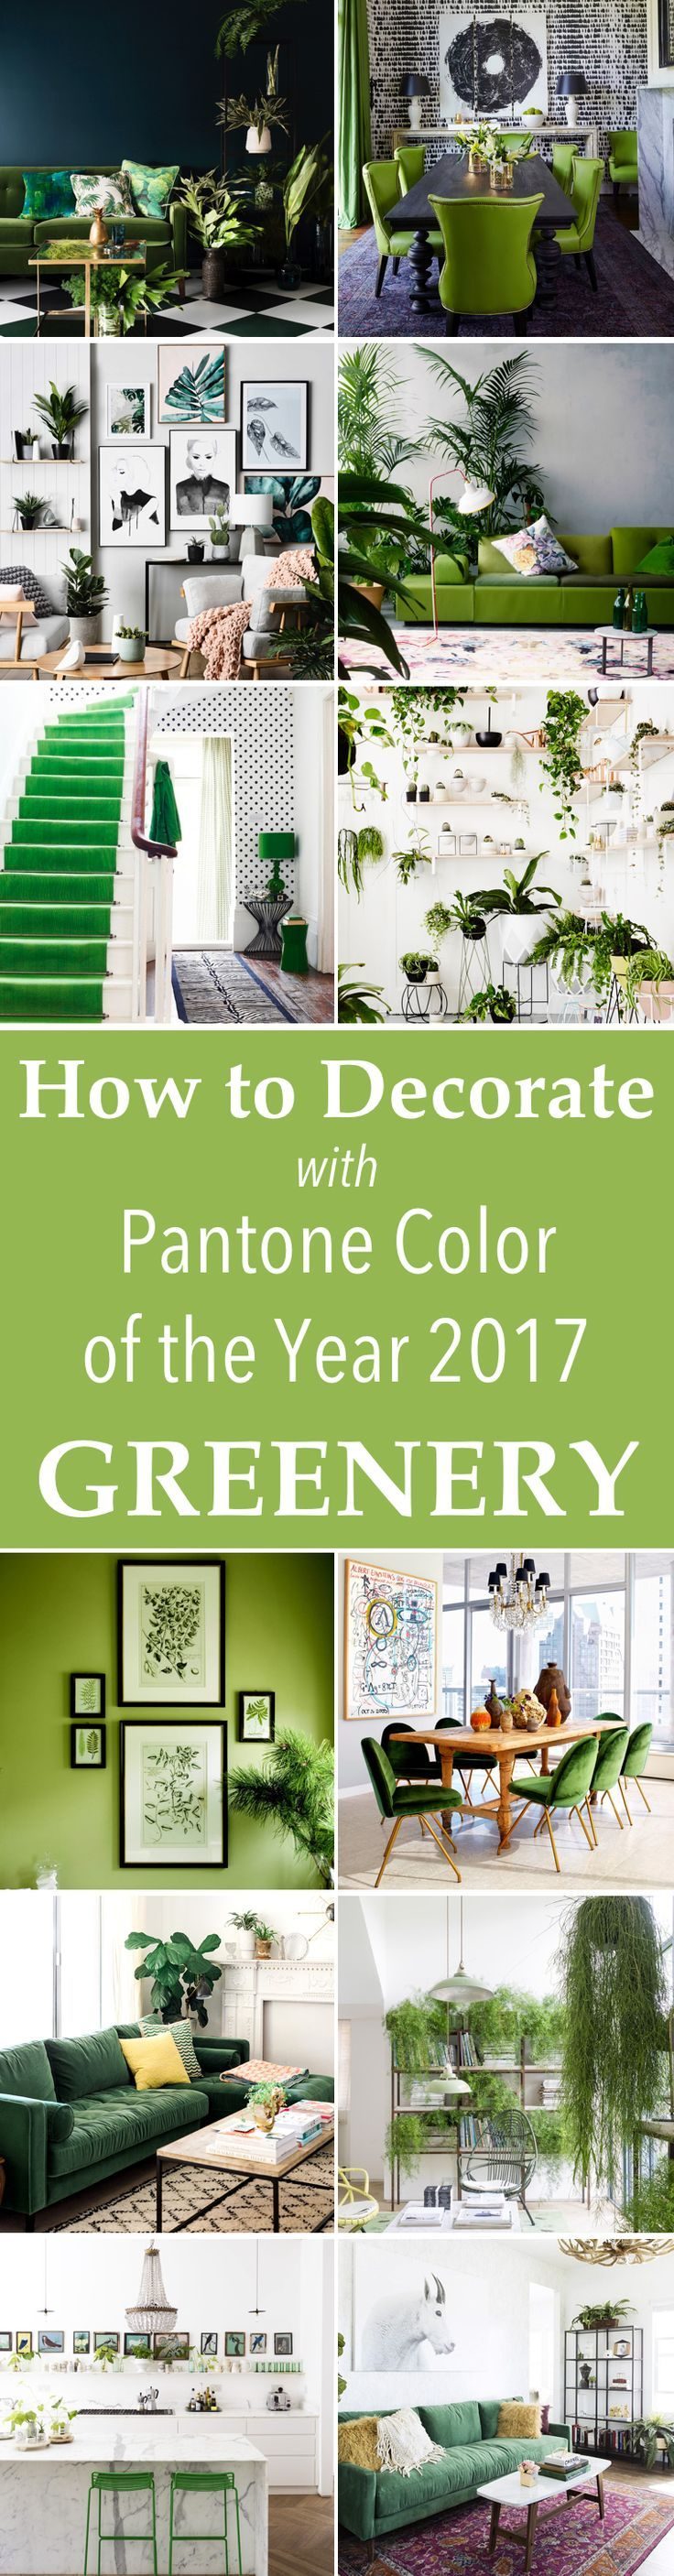 How To Decorate With Pantone Color Of The Year GREENERY! You can update your home with this latest color trend - Greenery!